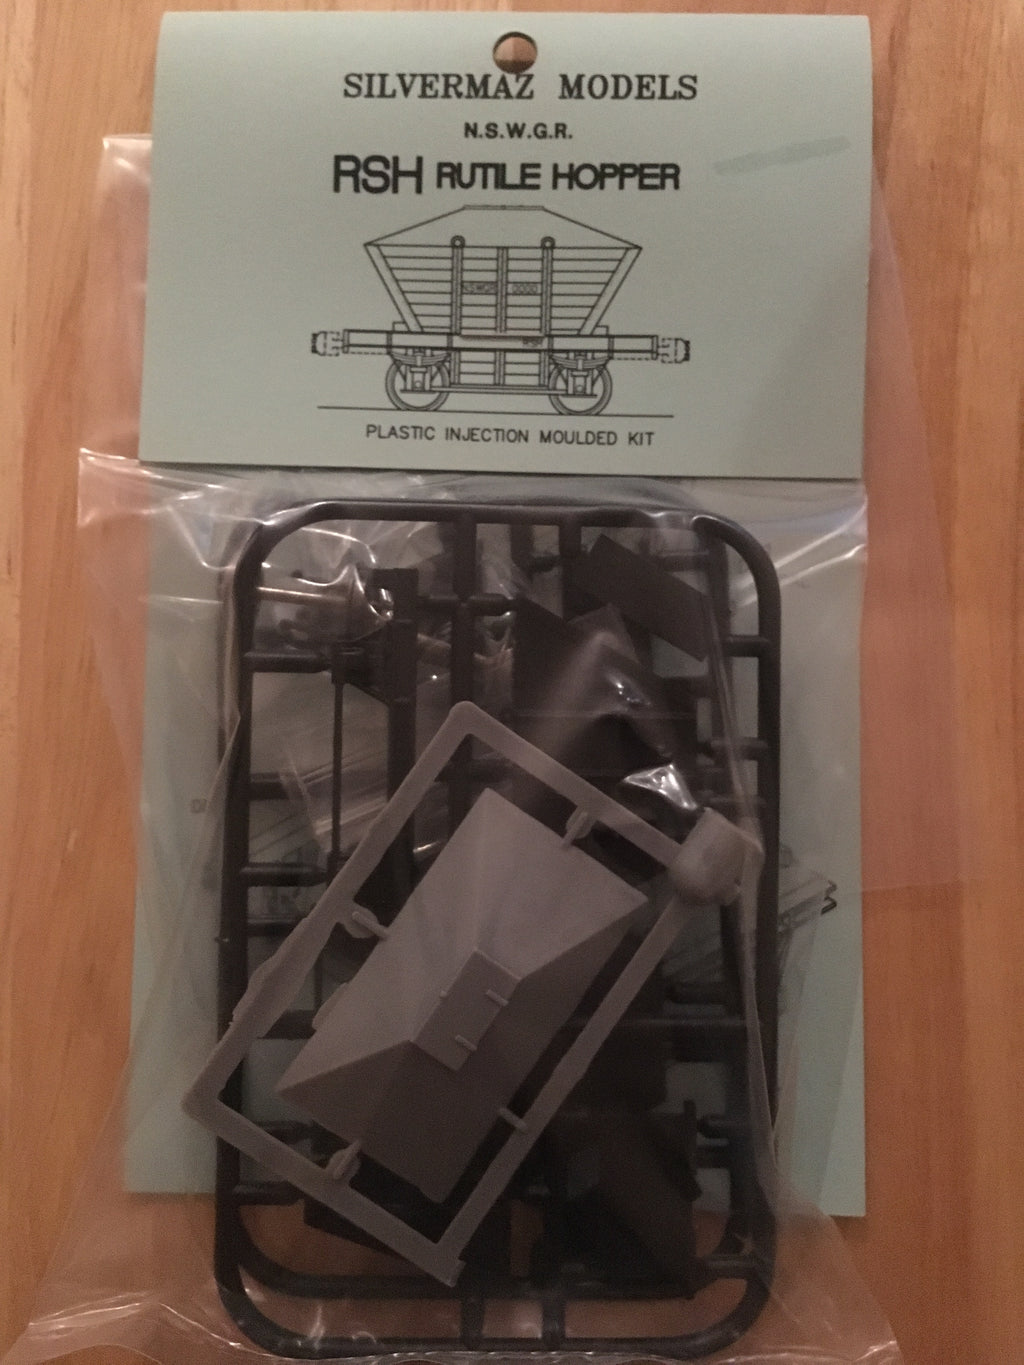 SILVERMAZ MODEL RAILWAYS : RSH Rutile Hopper Kit. NSWGR